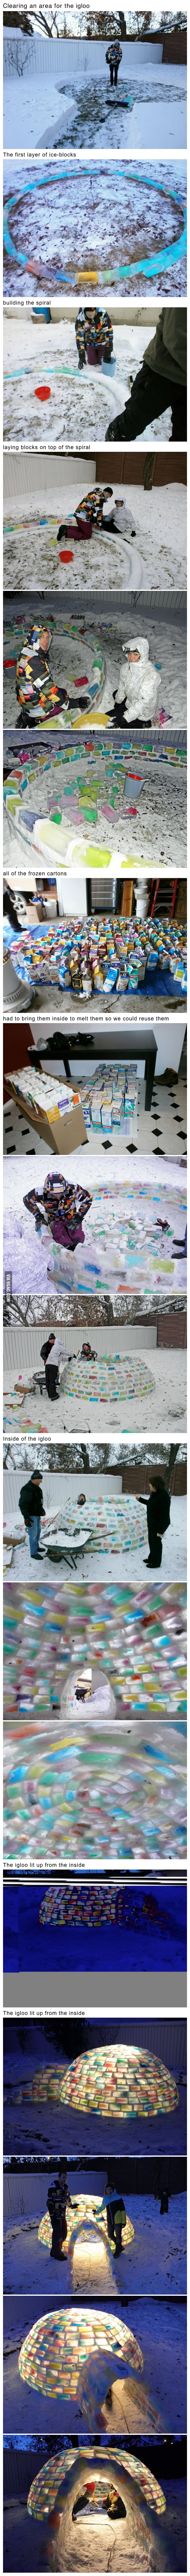 Awesome Igloo building